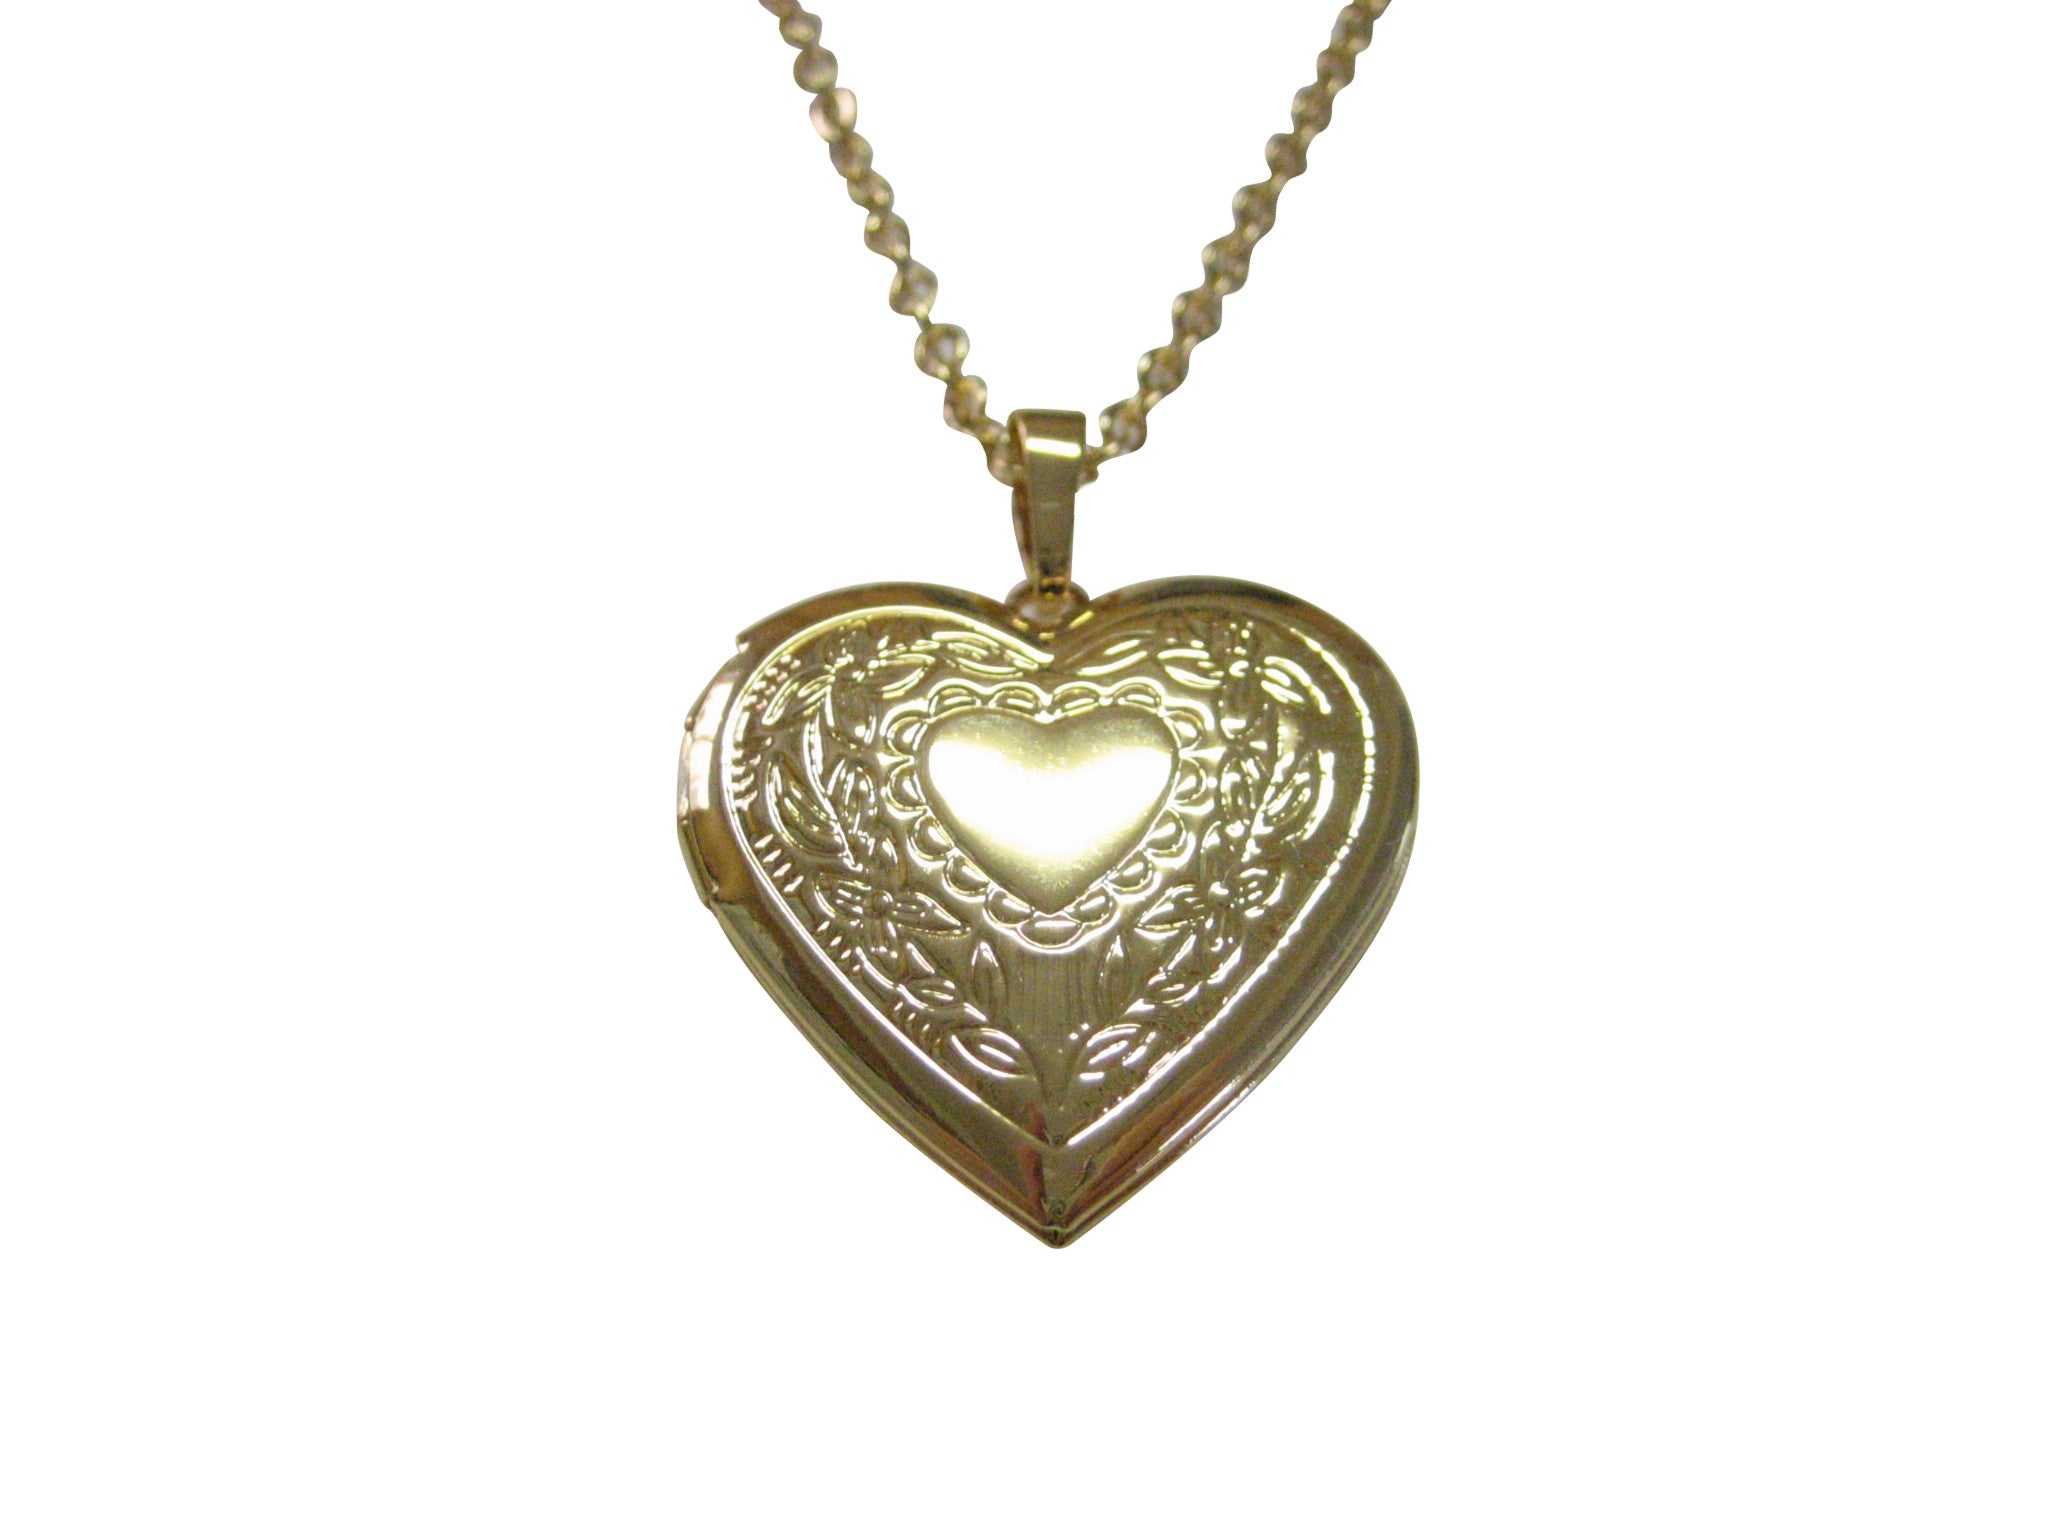 Gold Toned Heart Locket Pendant Necklace